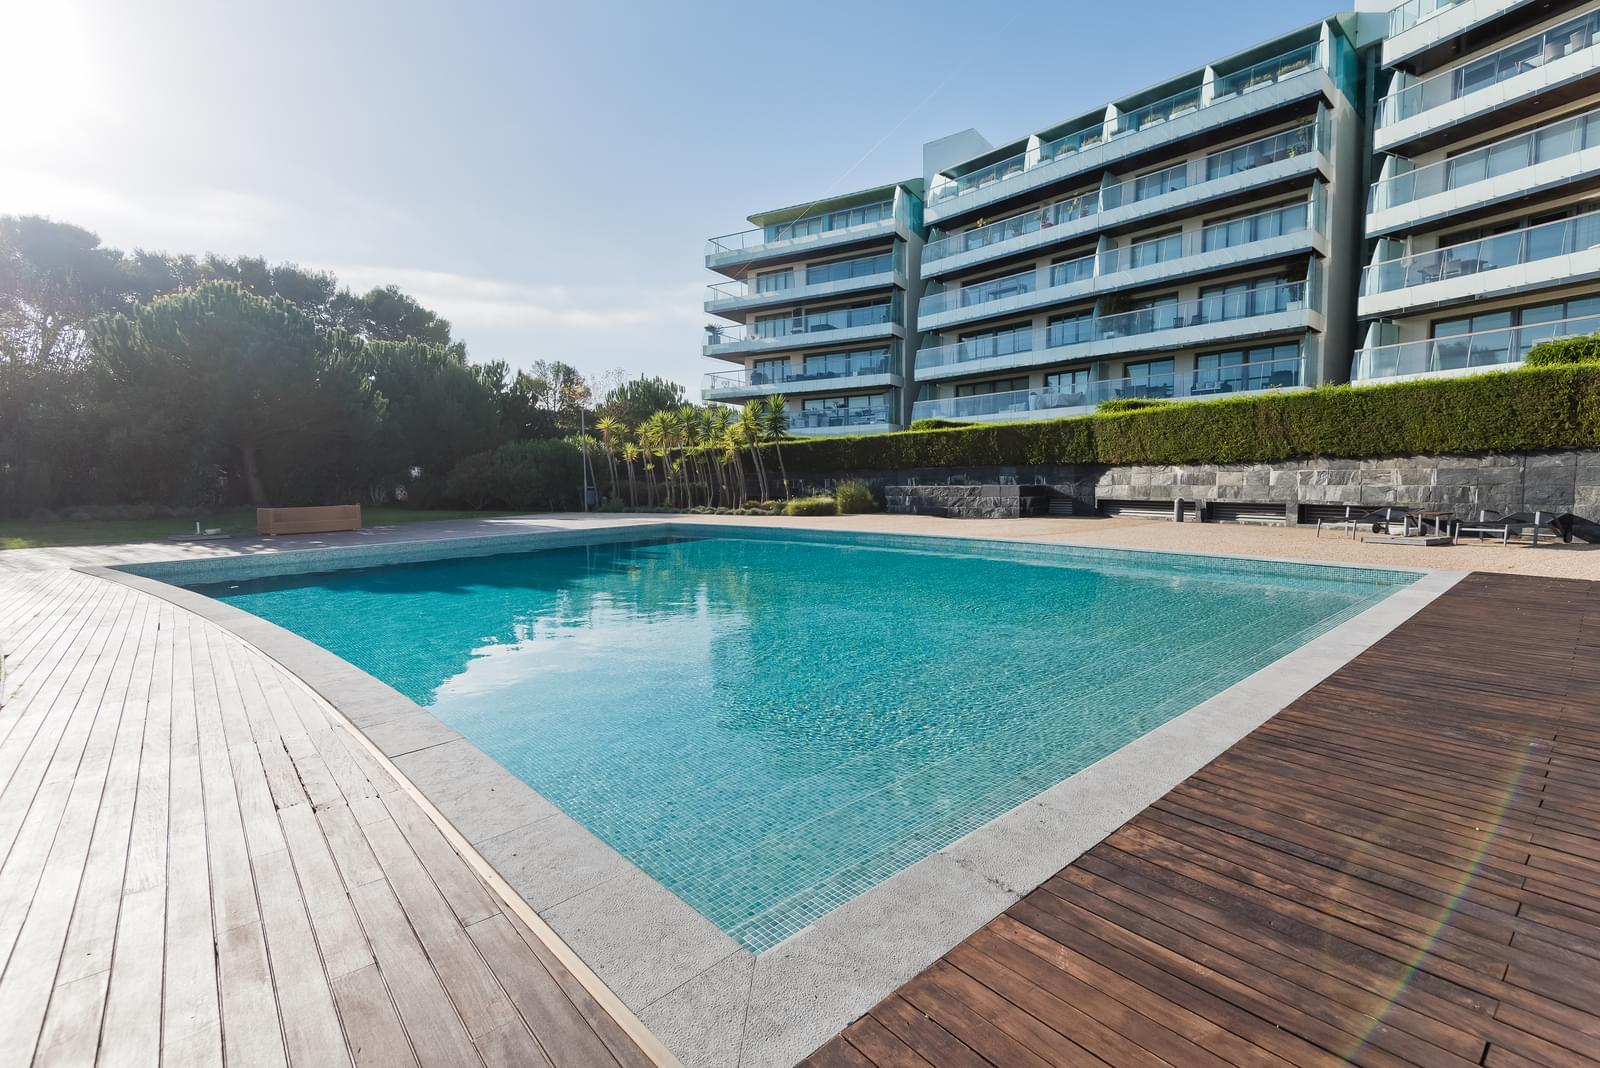 2 bedroom apartment with a swimming pool in gated community